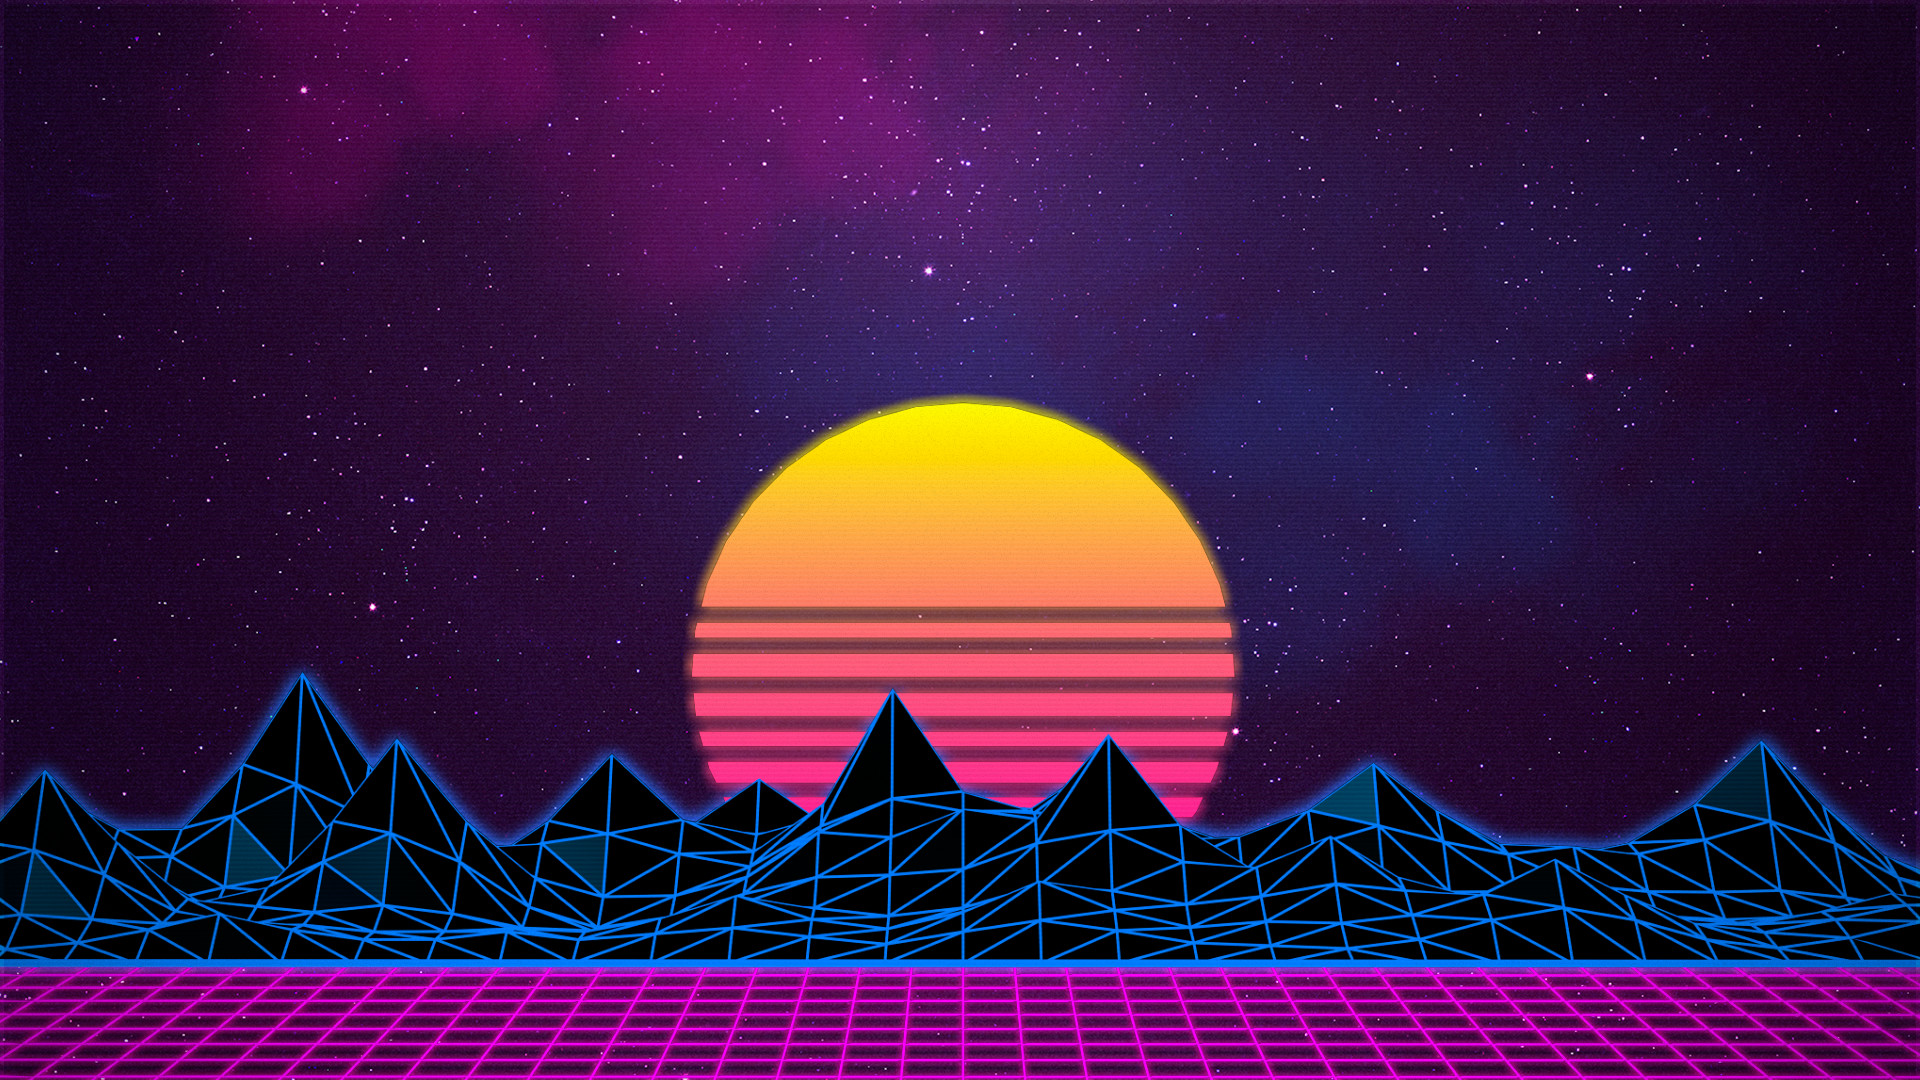 1920x1080 Thread: 80's electronic music, Synthpop and 8-bit